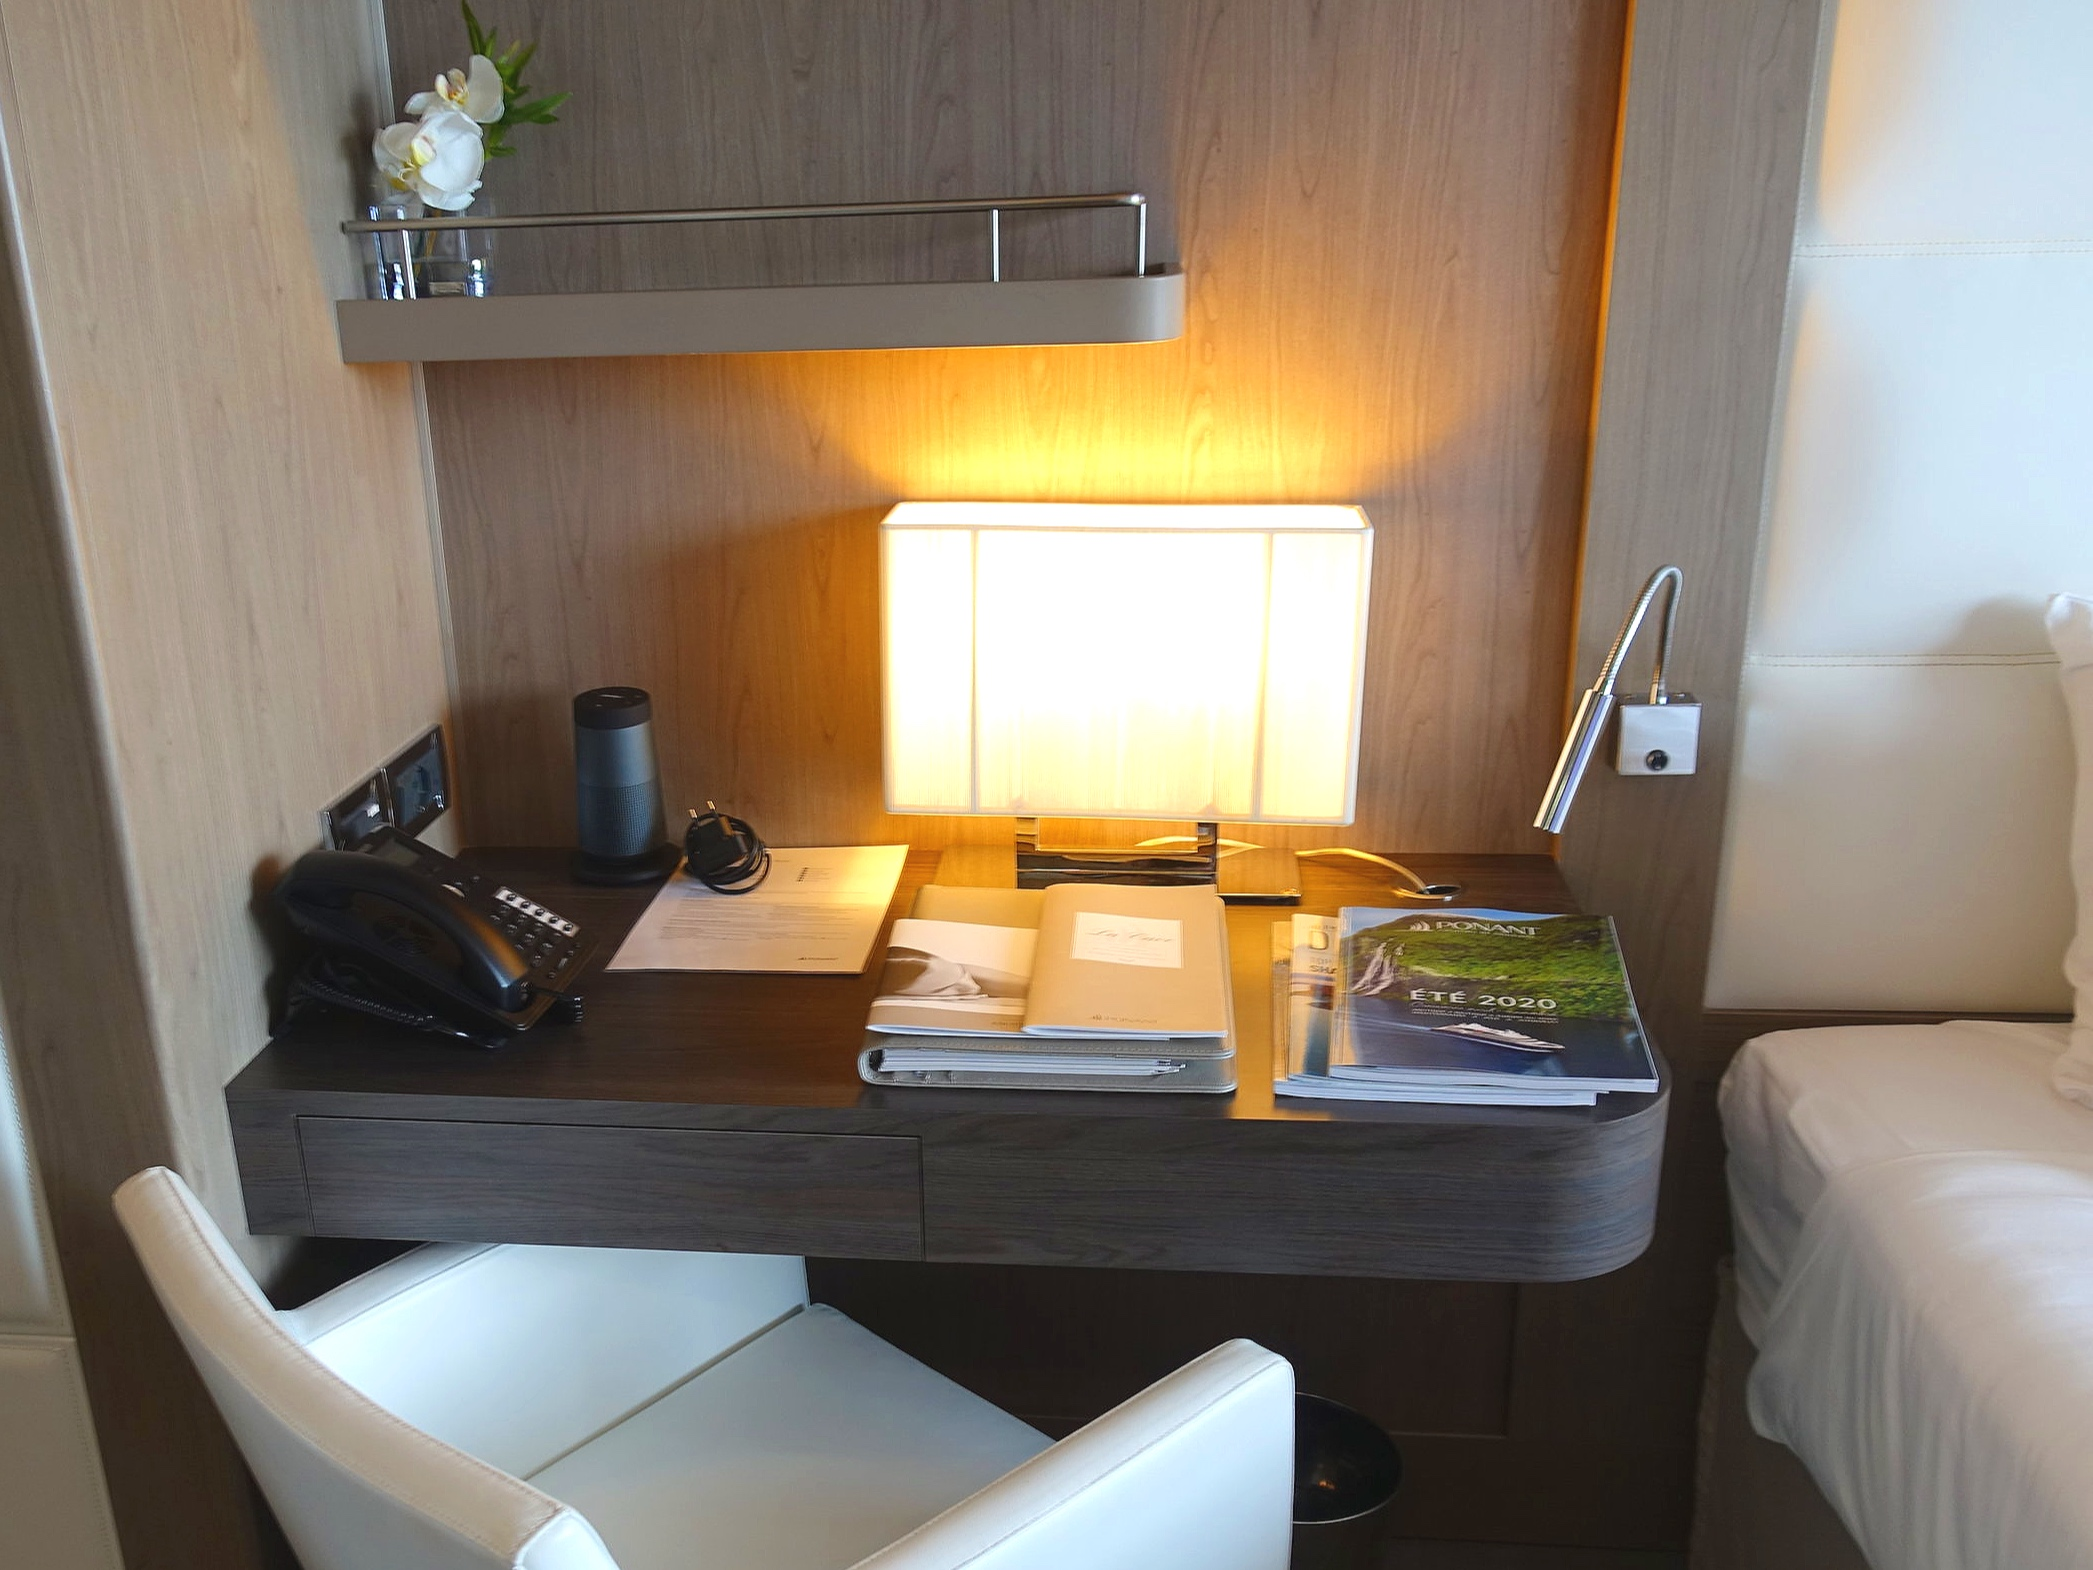 A lovely little in-suite desk area beside the bed.